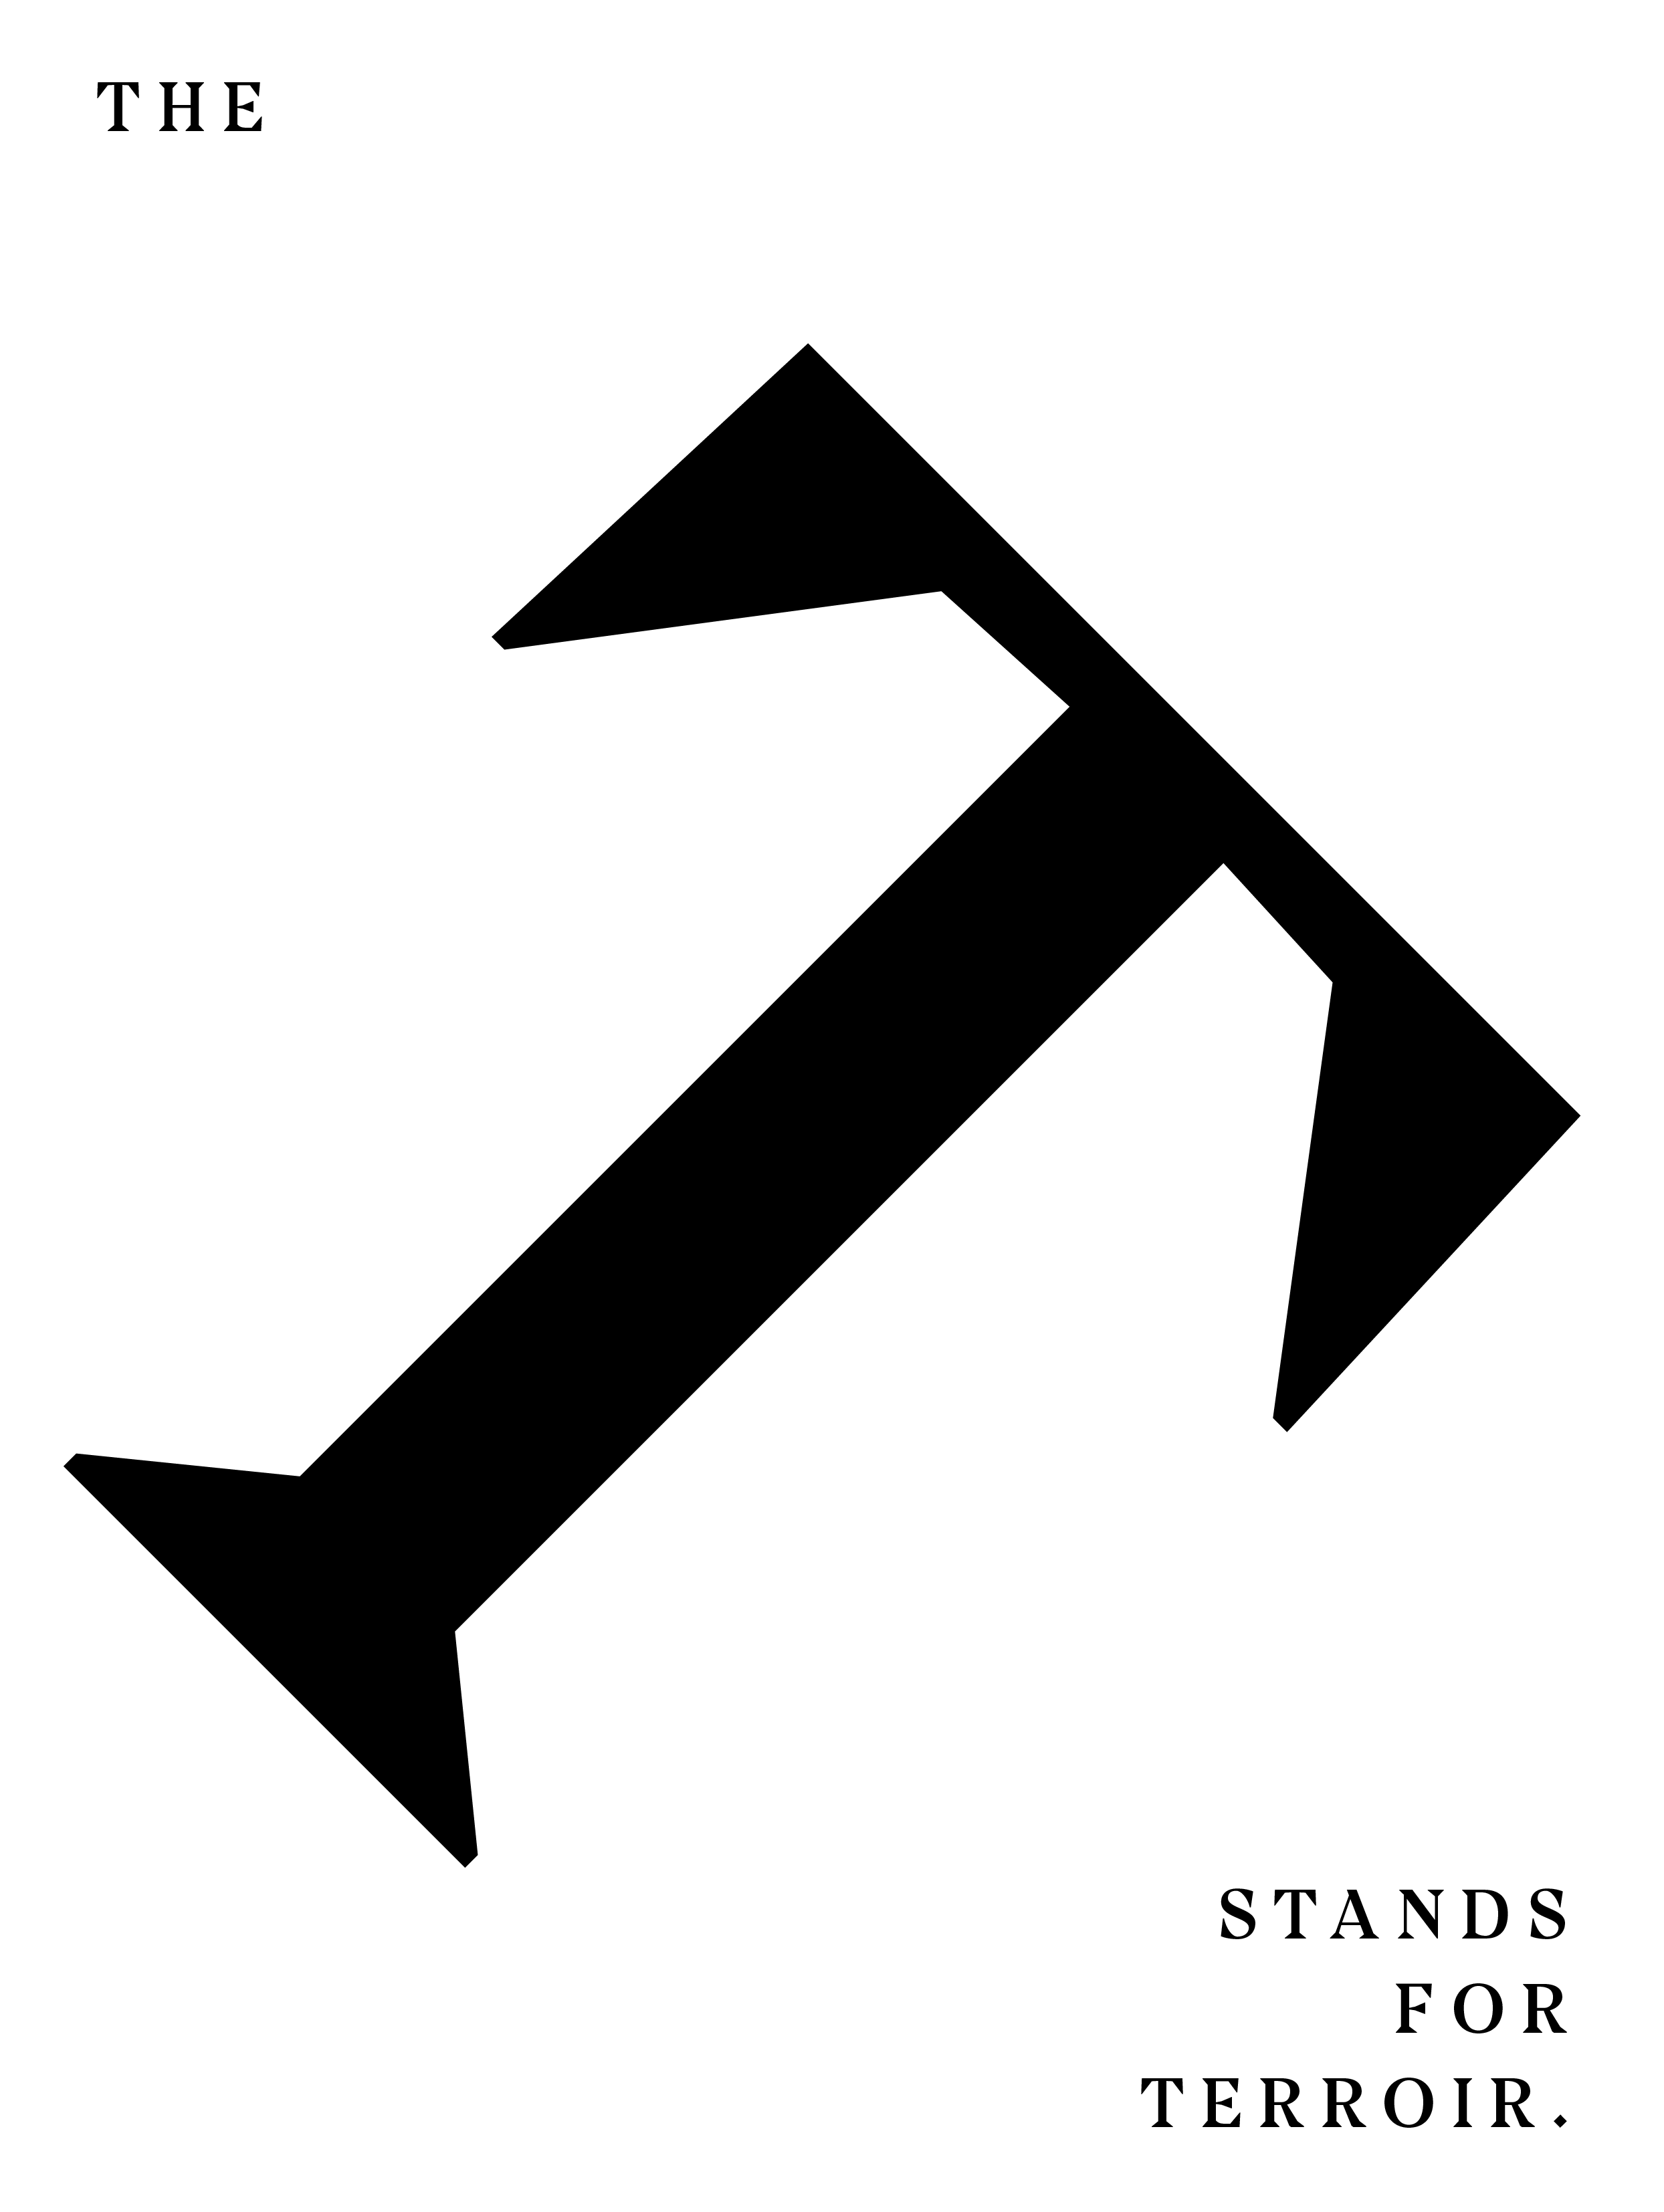 the t stands tra